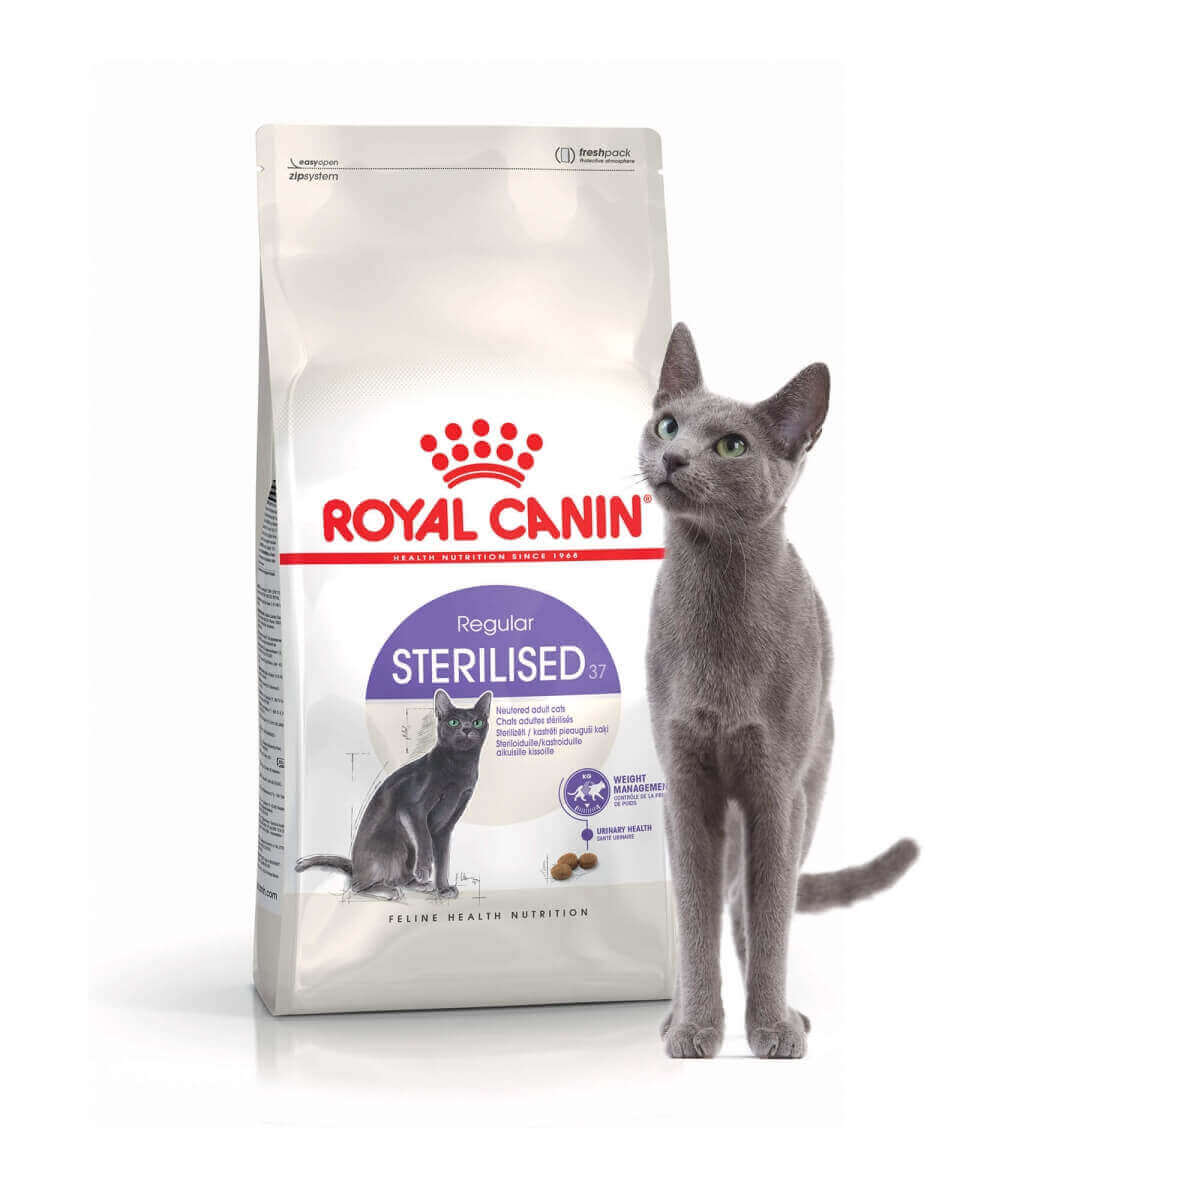 royal canin chien et chat. Black Bedroom Furniture Sets. Home Design Ideas